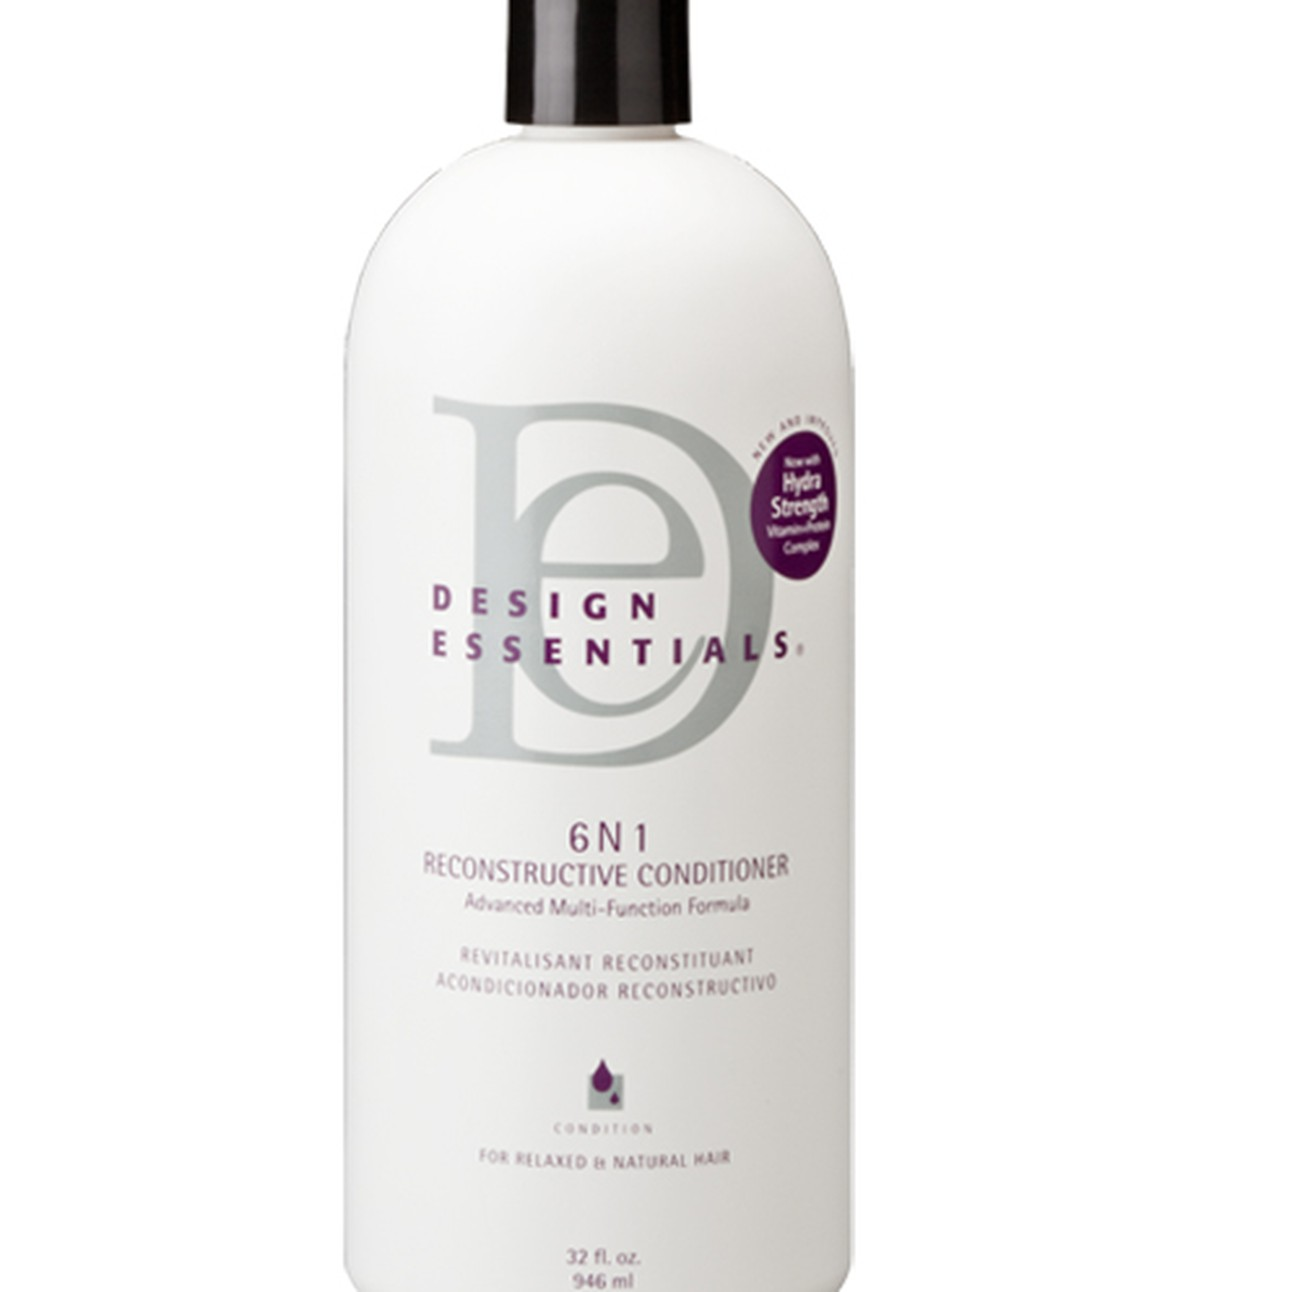 Design Essentials 6 N 1 Reconstructive Conditioner